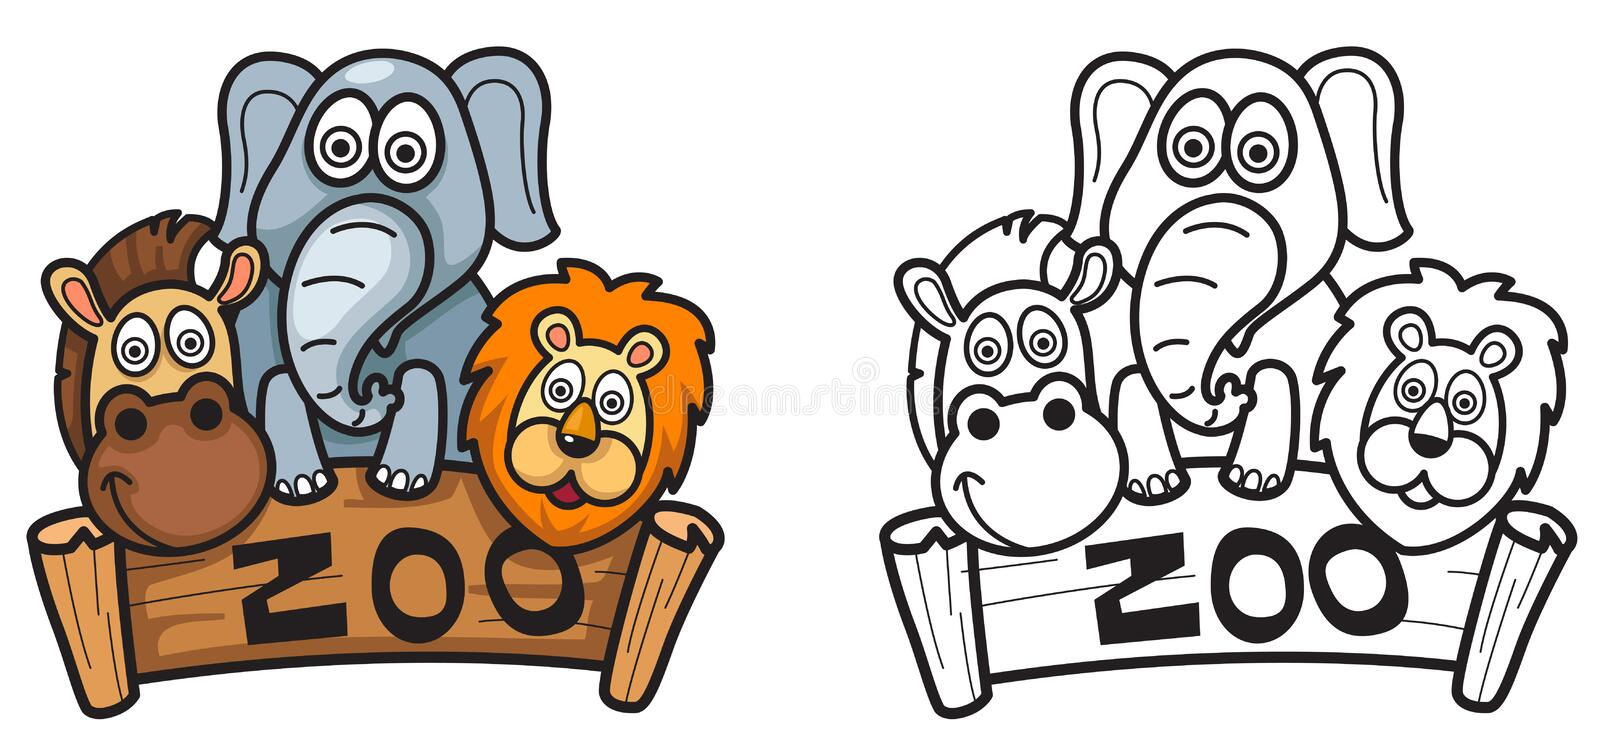 Colorful And Black And White Zoo For Coloring Book Stock Vector ...